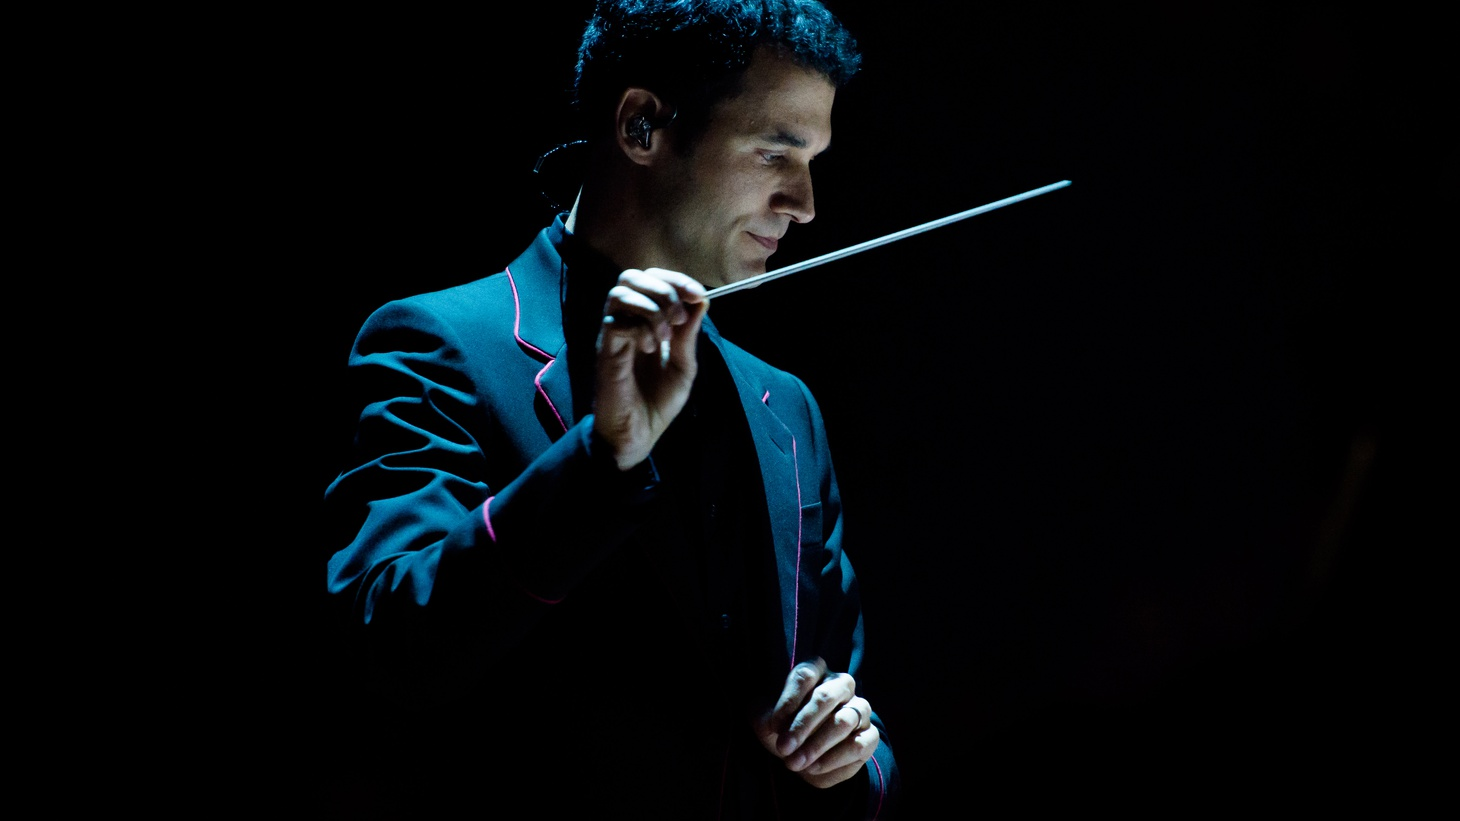 Game of Thrones composer Ramin Djawadi brings a small ensemble to our studio for a live performance.